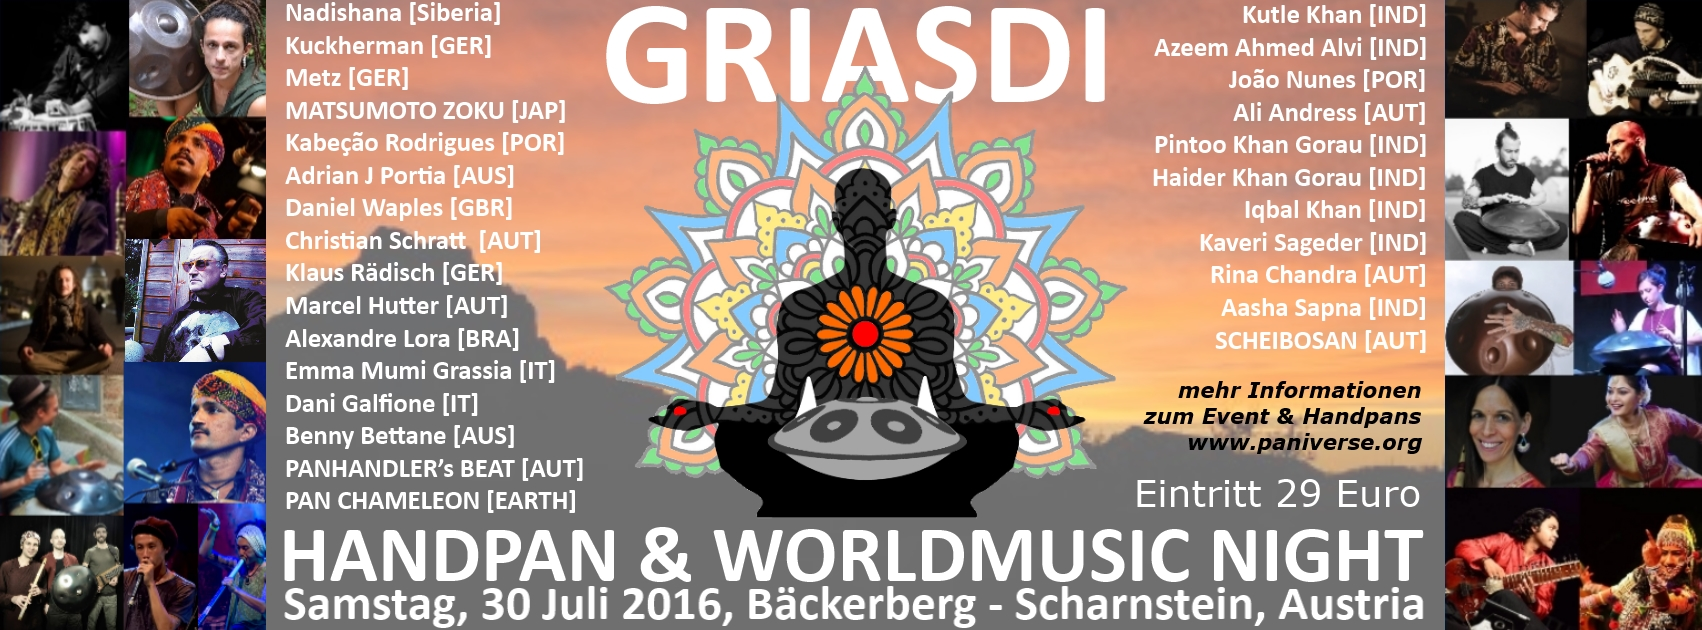 GRIASDI_MUSIC NIGHT 2016-FLYERPRINT_1702x630